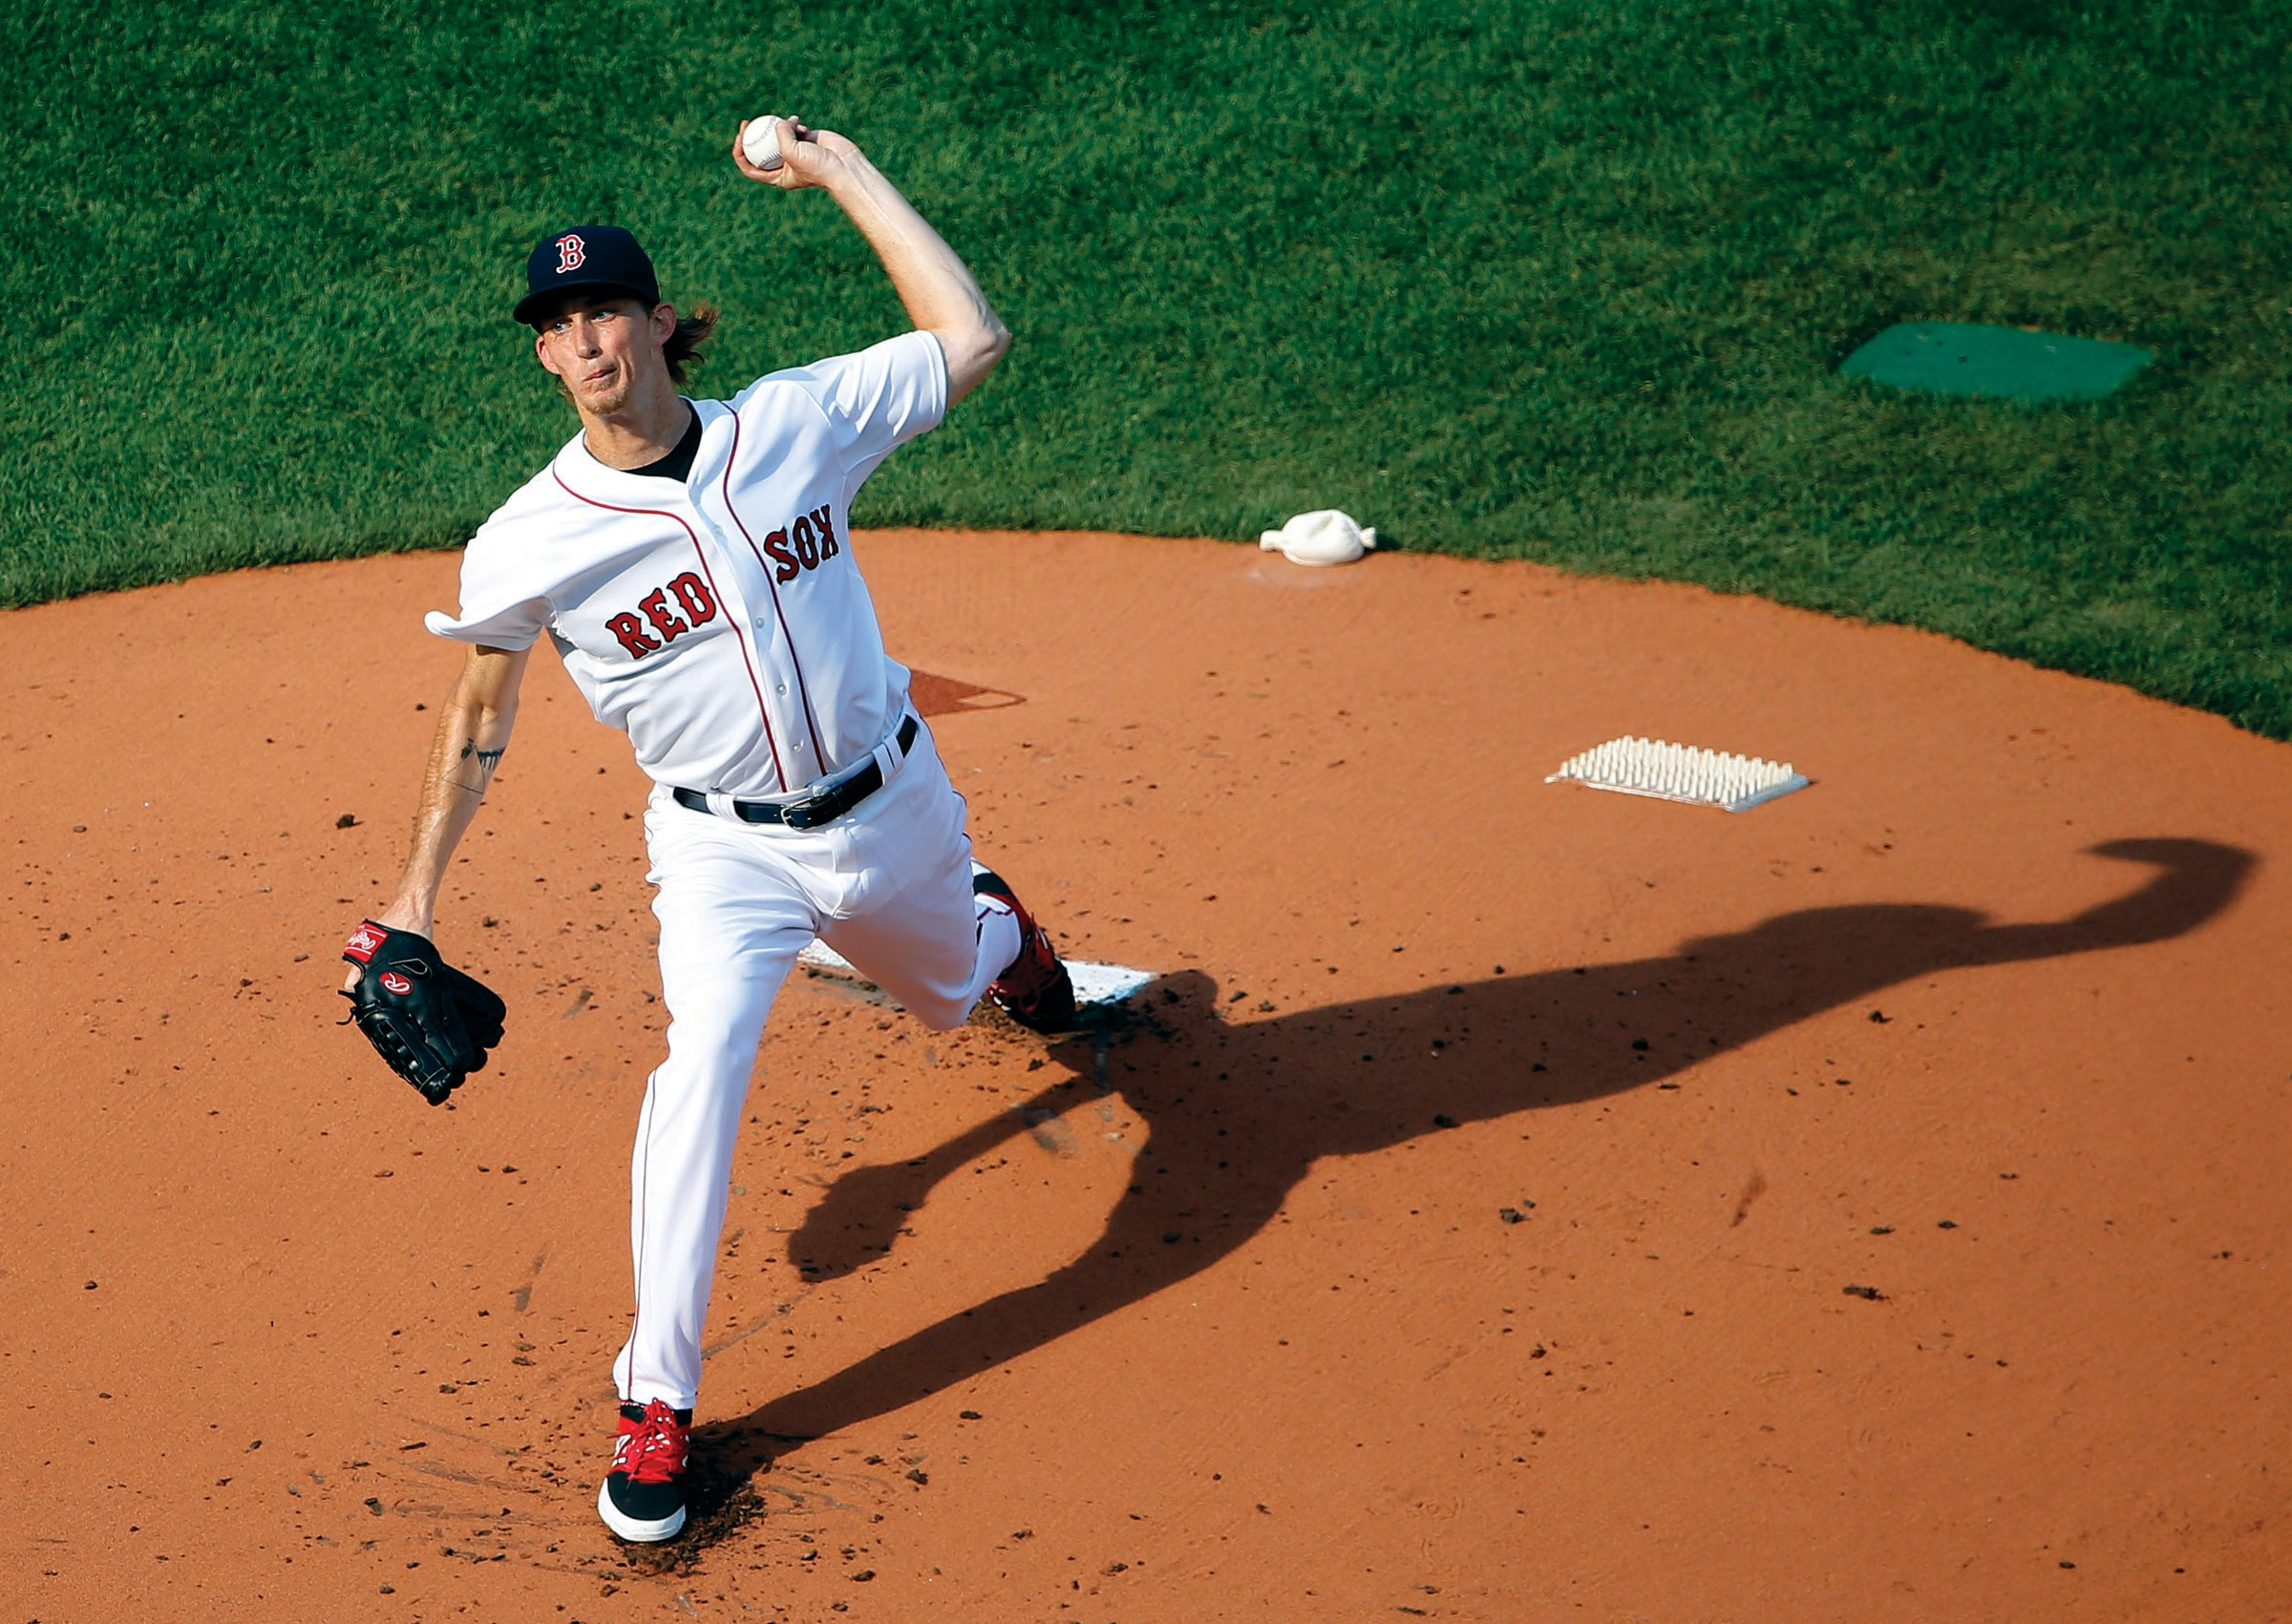 Boston Red Sox starting pitcher Henry Owens delivers against the New York Yankees during the first inning of a baseball game at Fenway Park in Boston Wednesday.